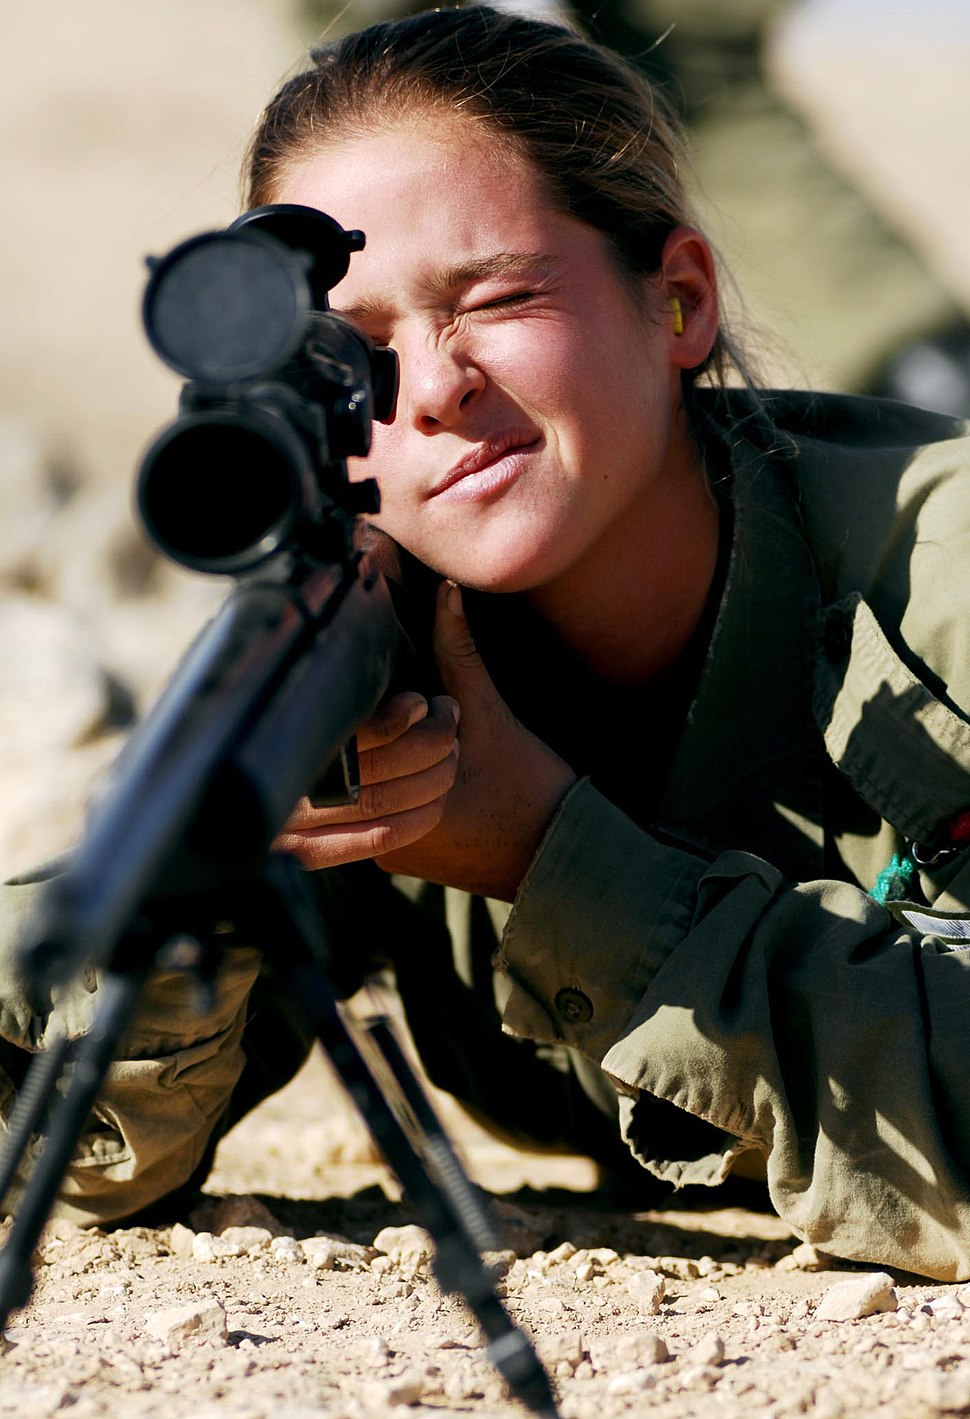 Flickr - Israel Defense Forces - Female Soldier Aiming her Weapon